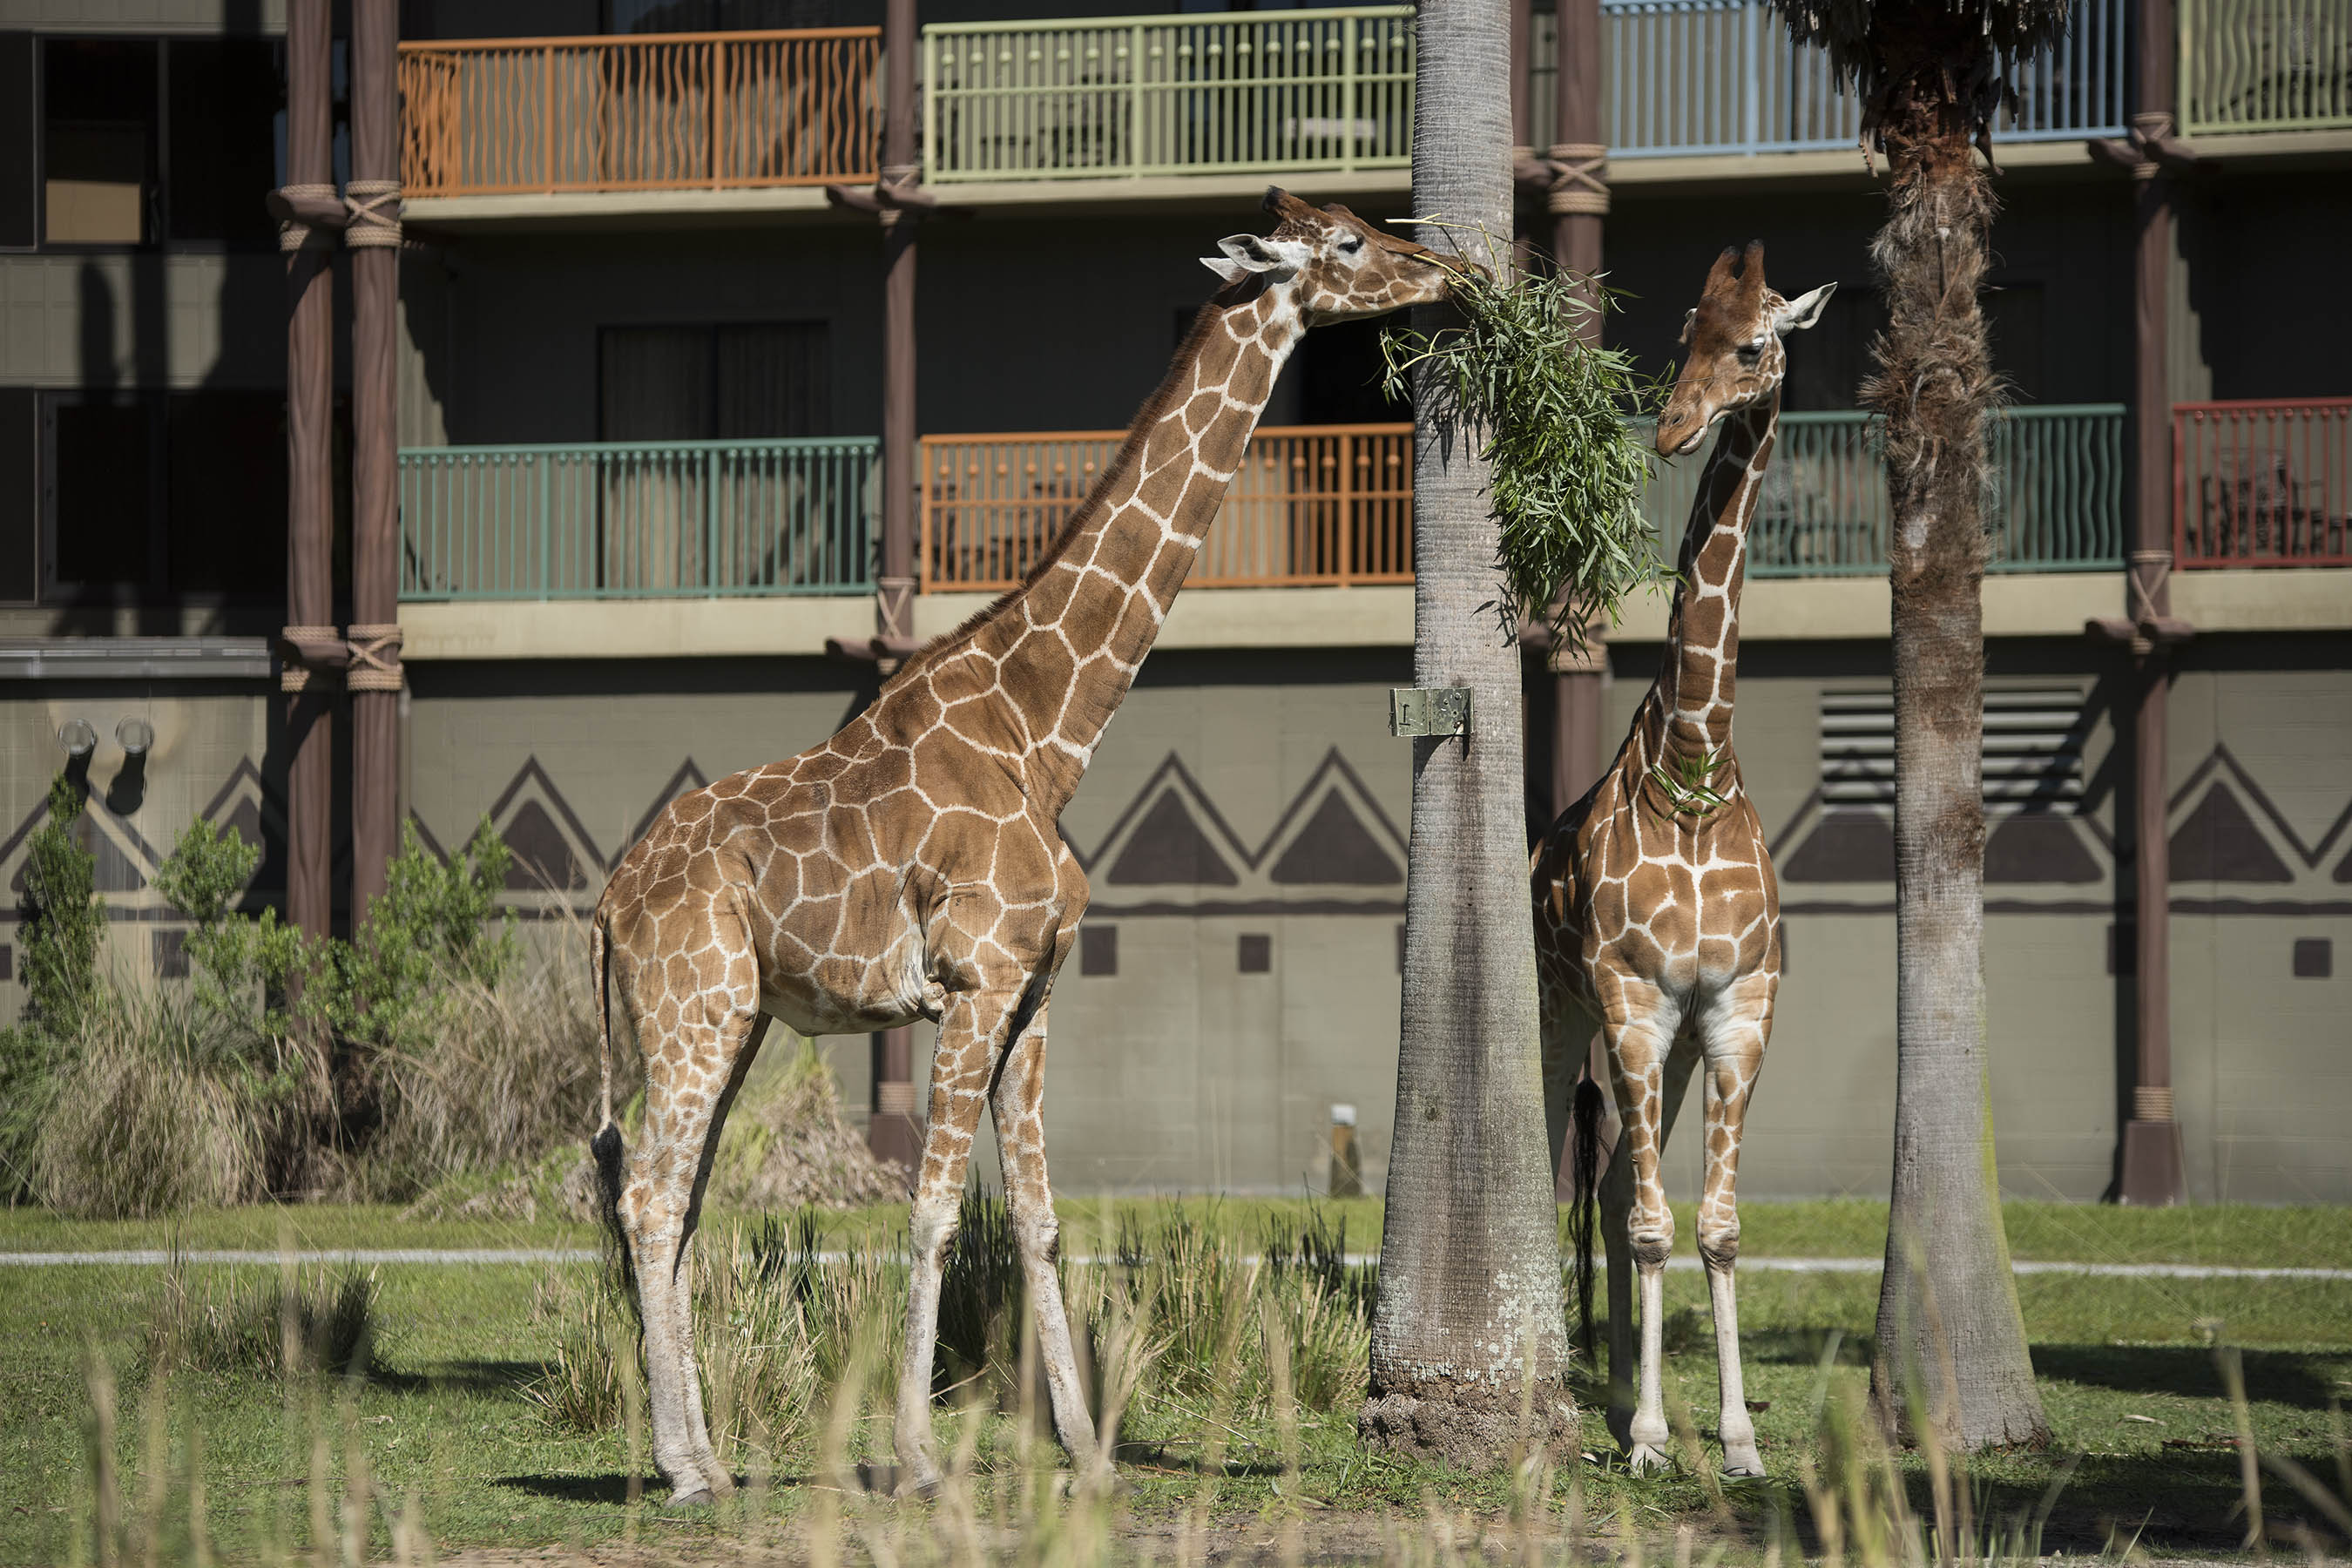 3 Generations of Giraffe Celebrate Mother's Day at Disney's Animal Kingdom Lodge Savanna